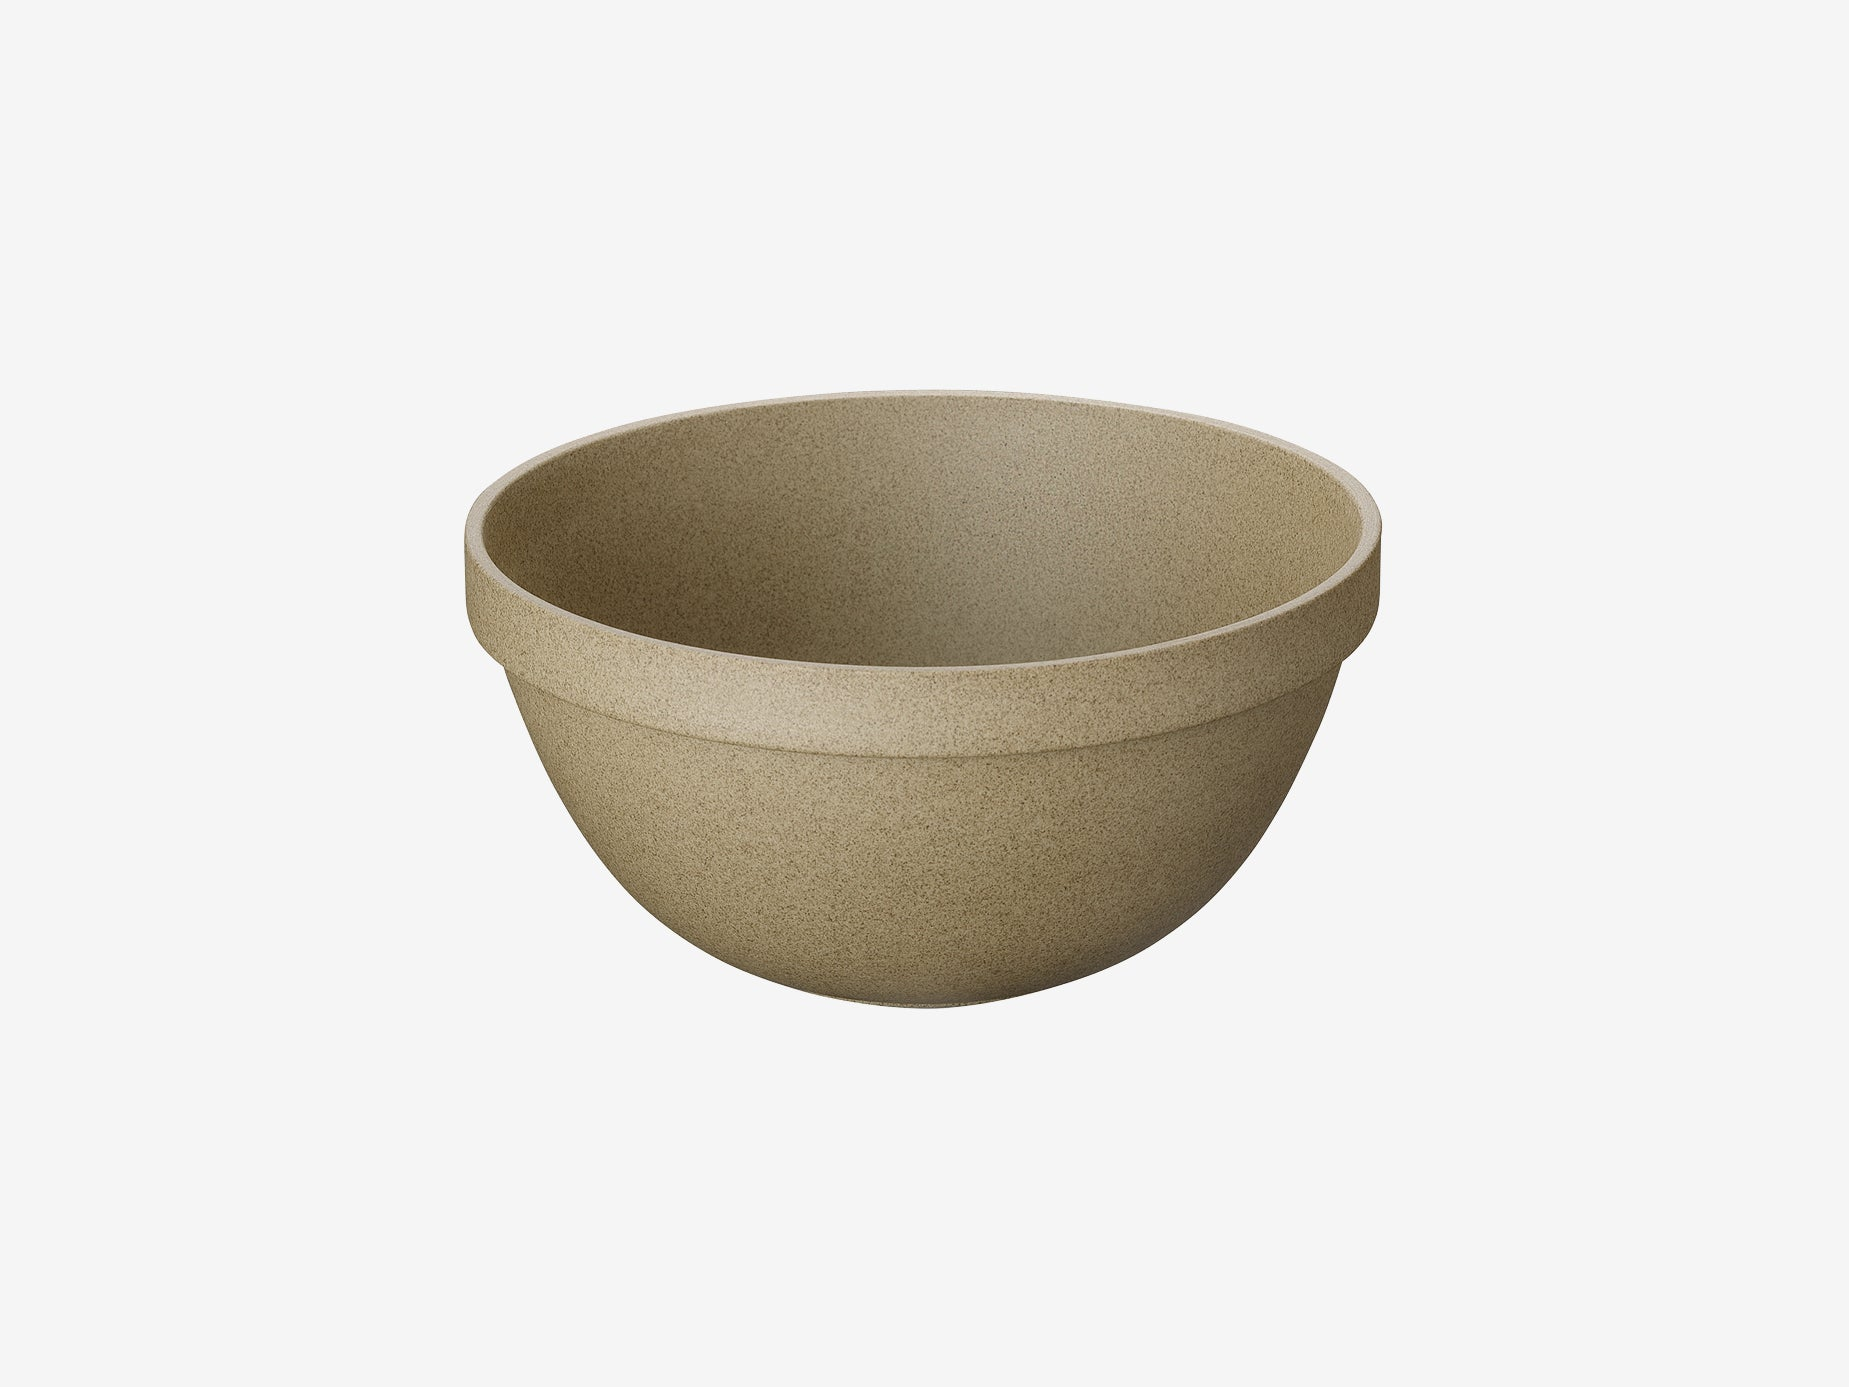 Hasami Porcelain Deep Round Bowl - Large, Natural